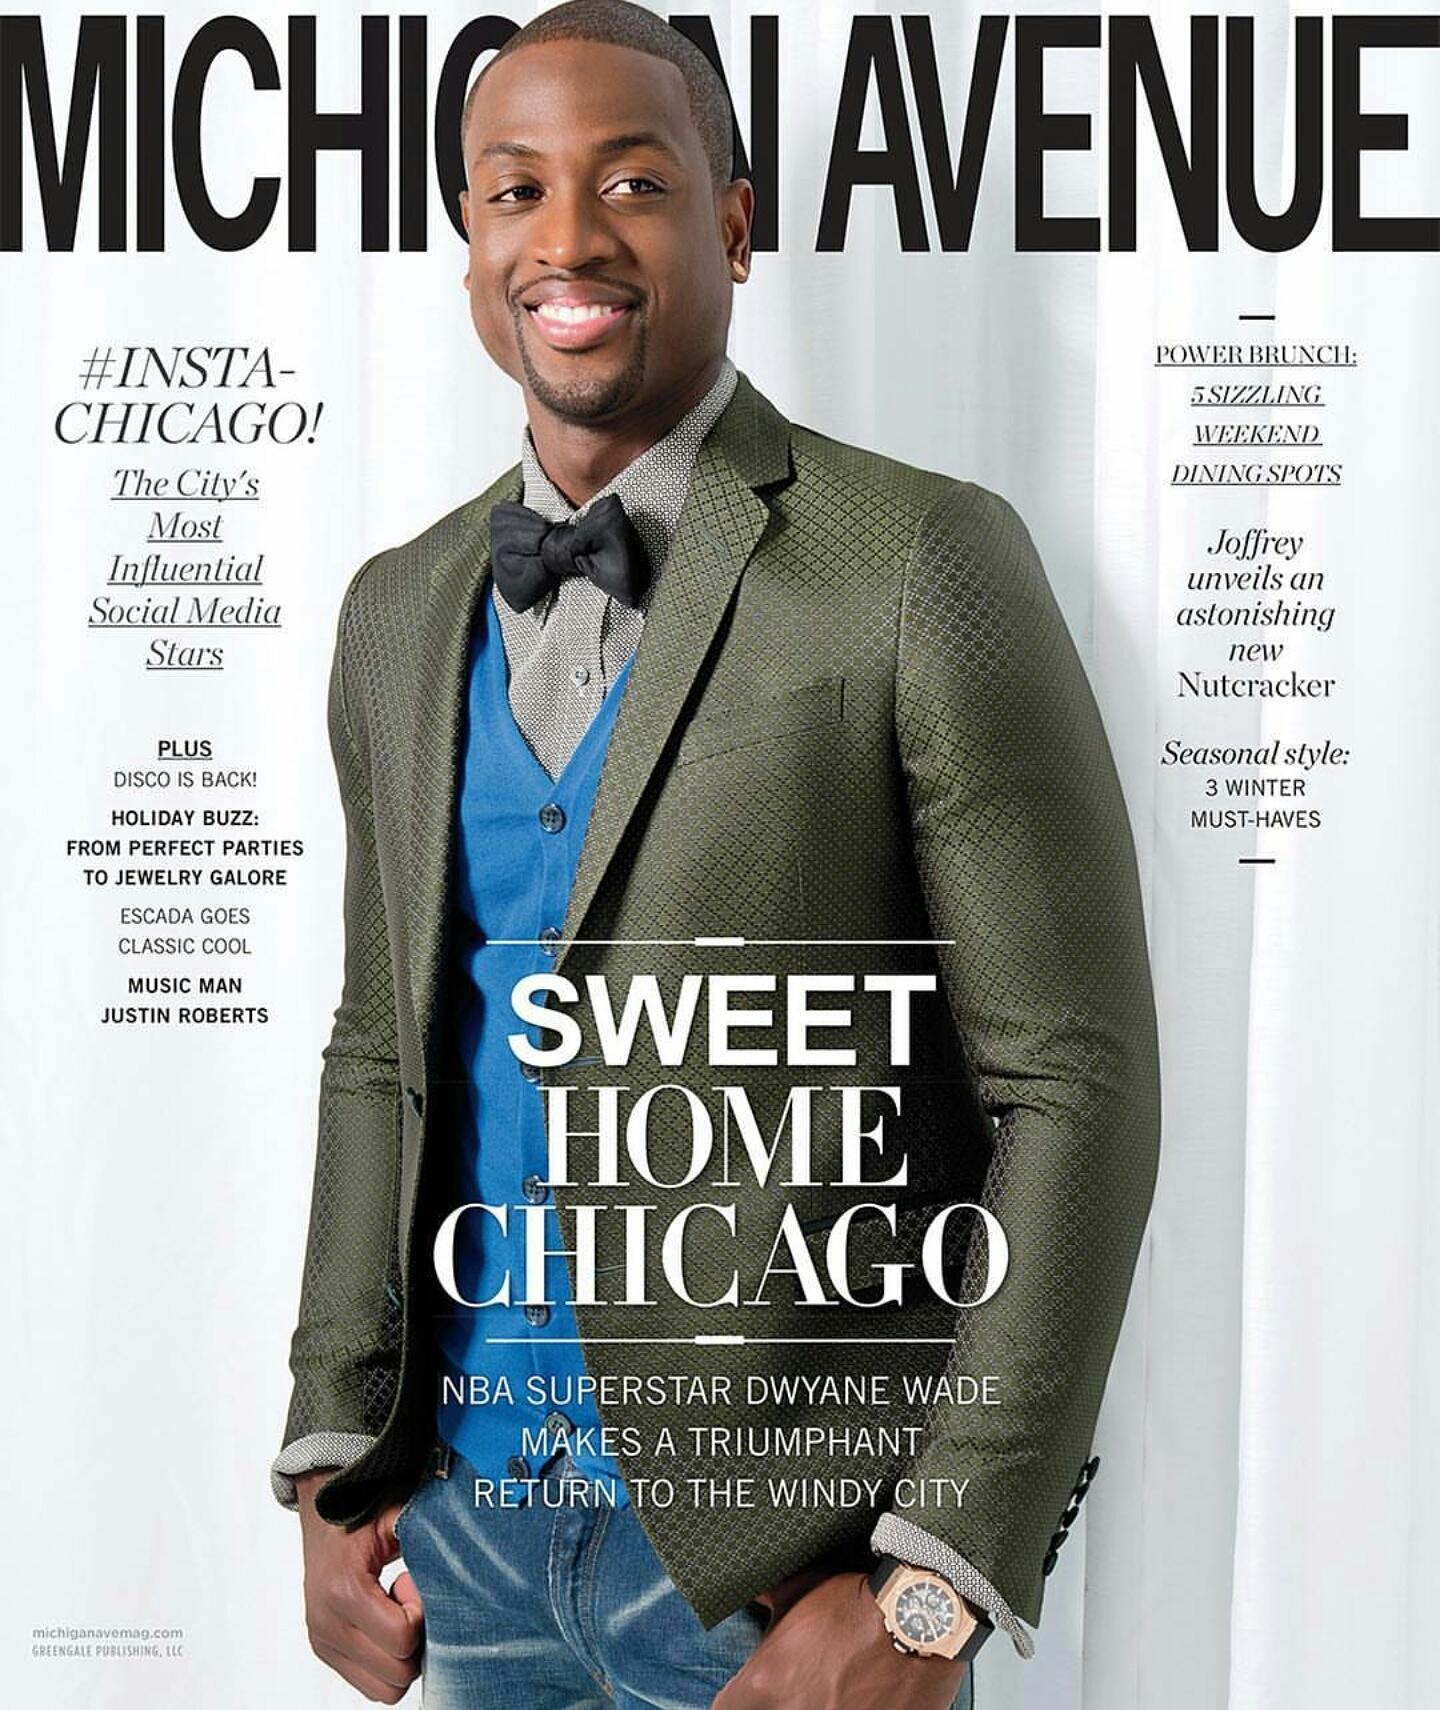 Dwayne Wade Opens Up About Chicago Bulls Move And More In Interview with Michigan Avenue Magazine